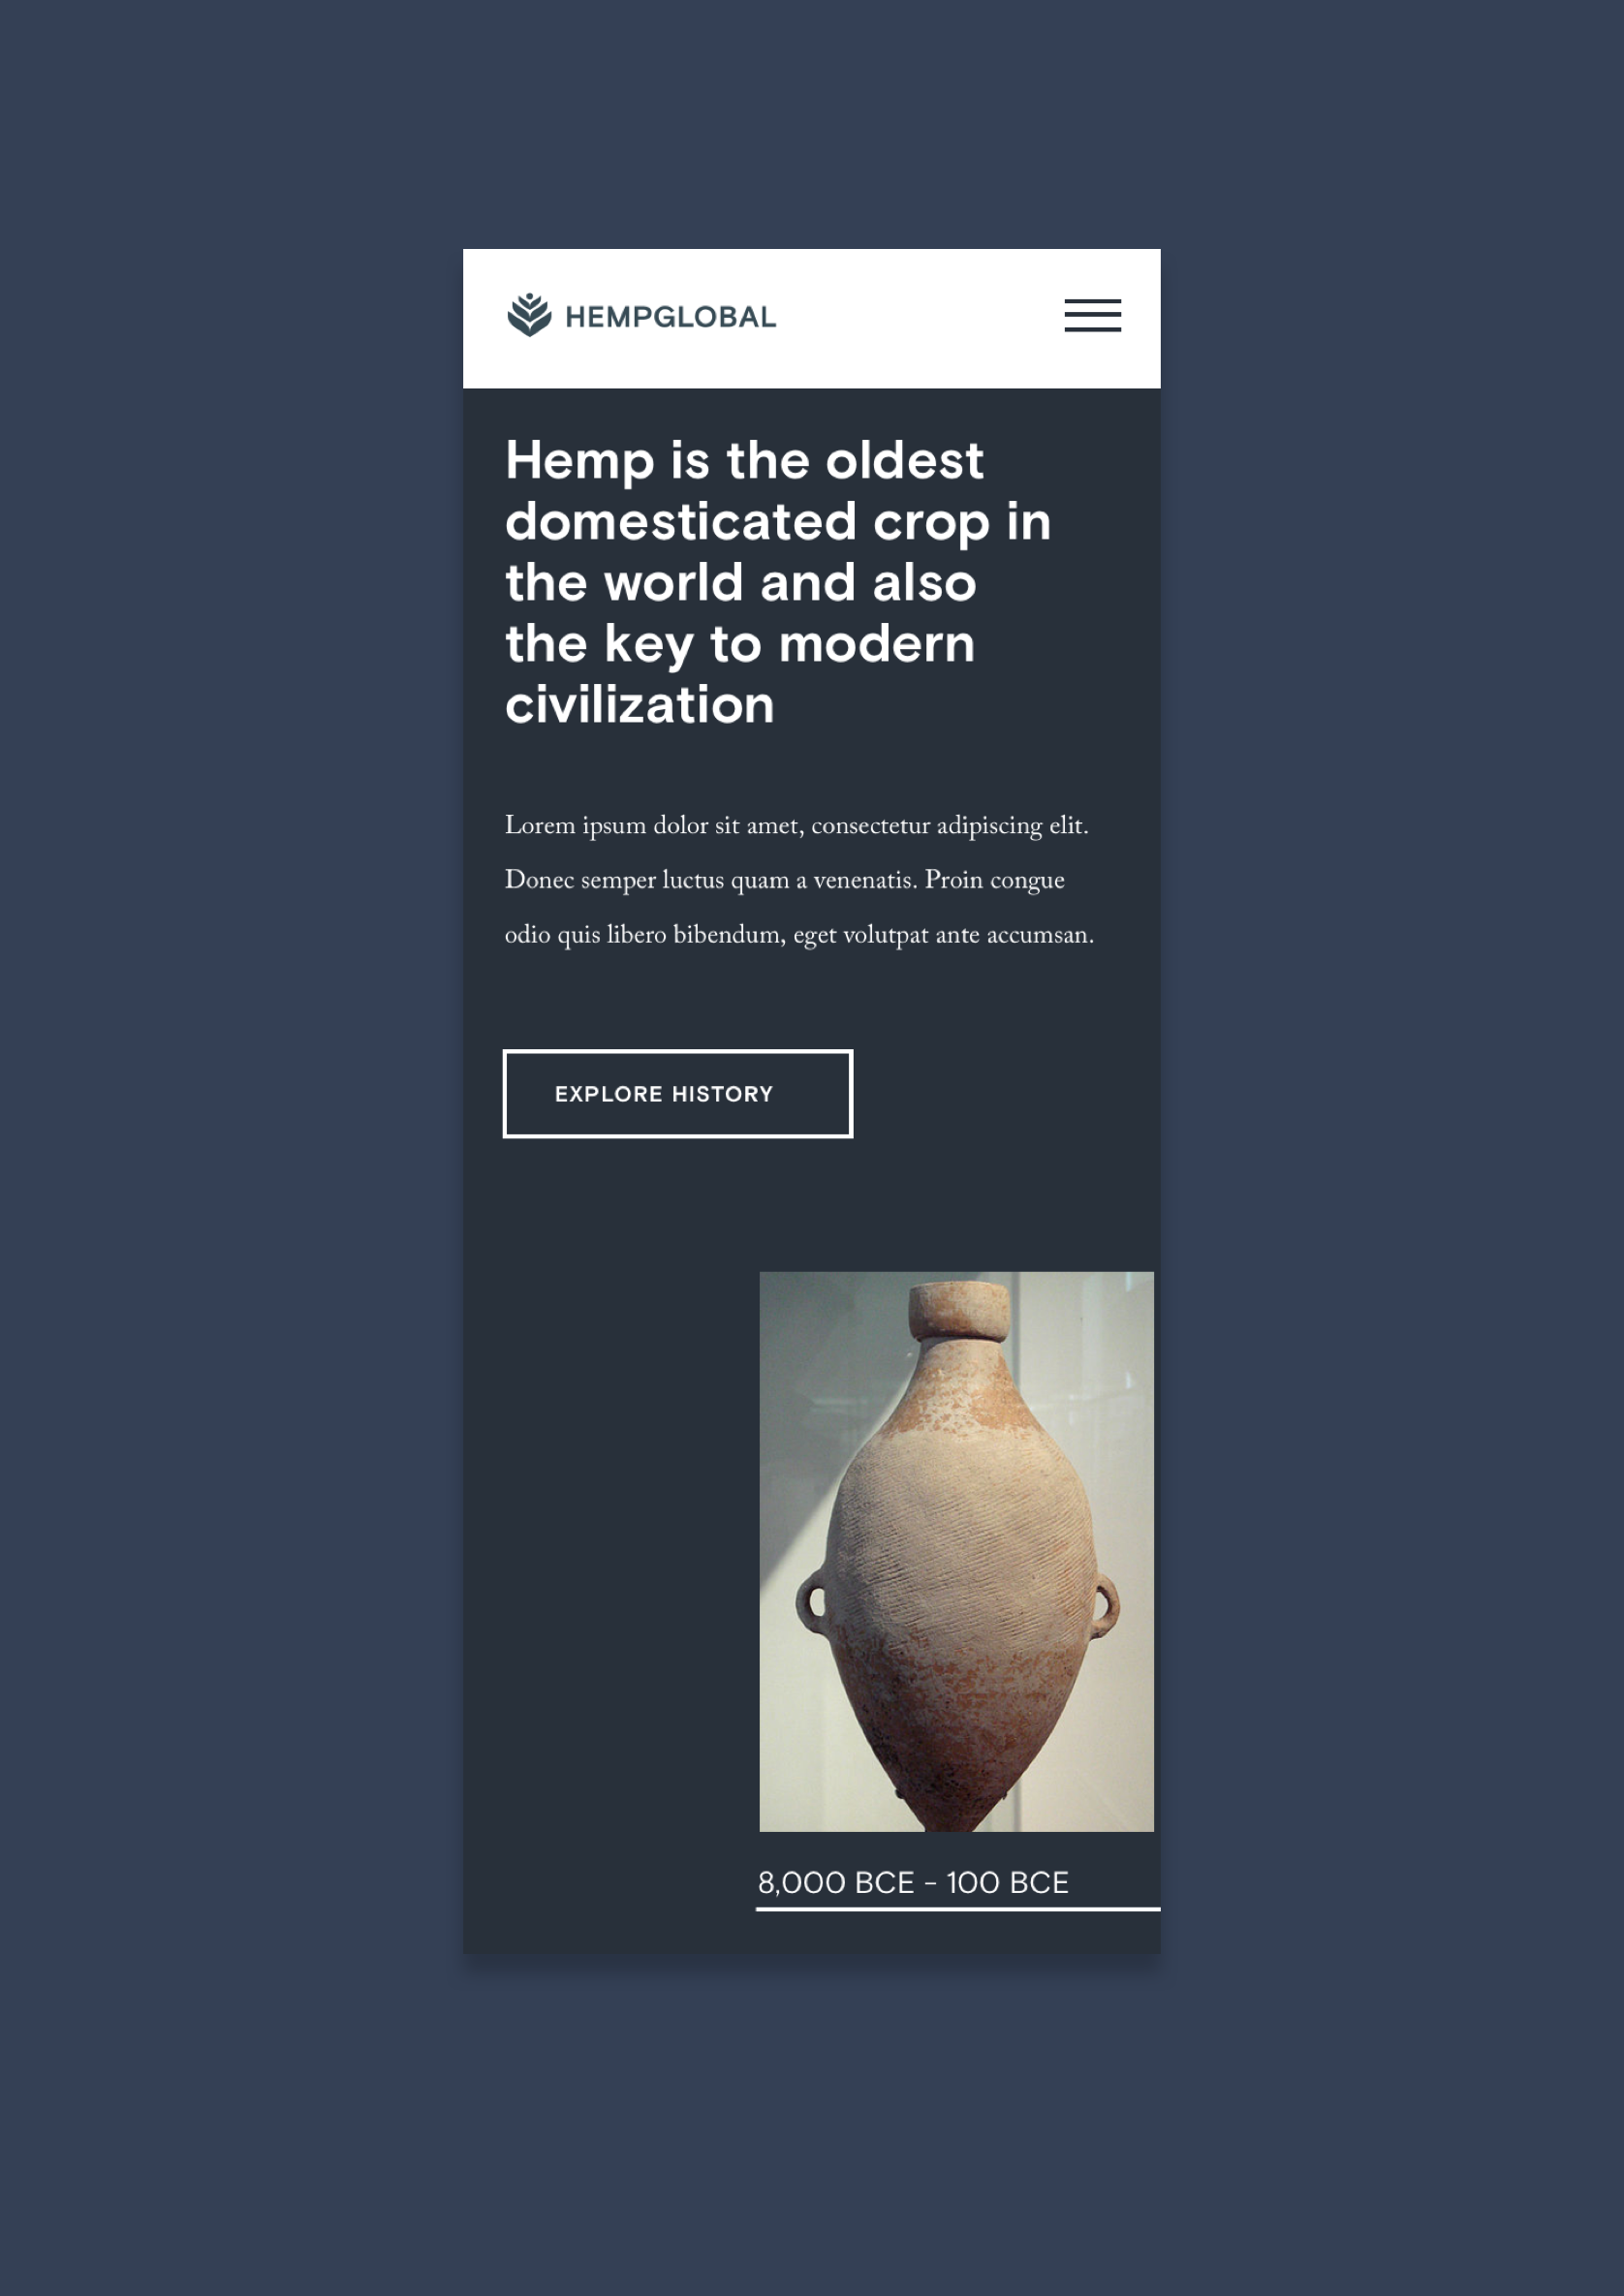 Hemp is the oldest domesticated crop in the world and also the key to modern civilization. Mobile HGI comp of history page;